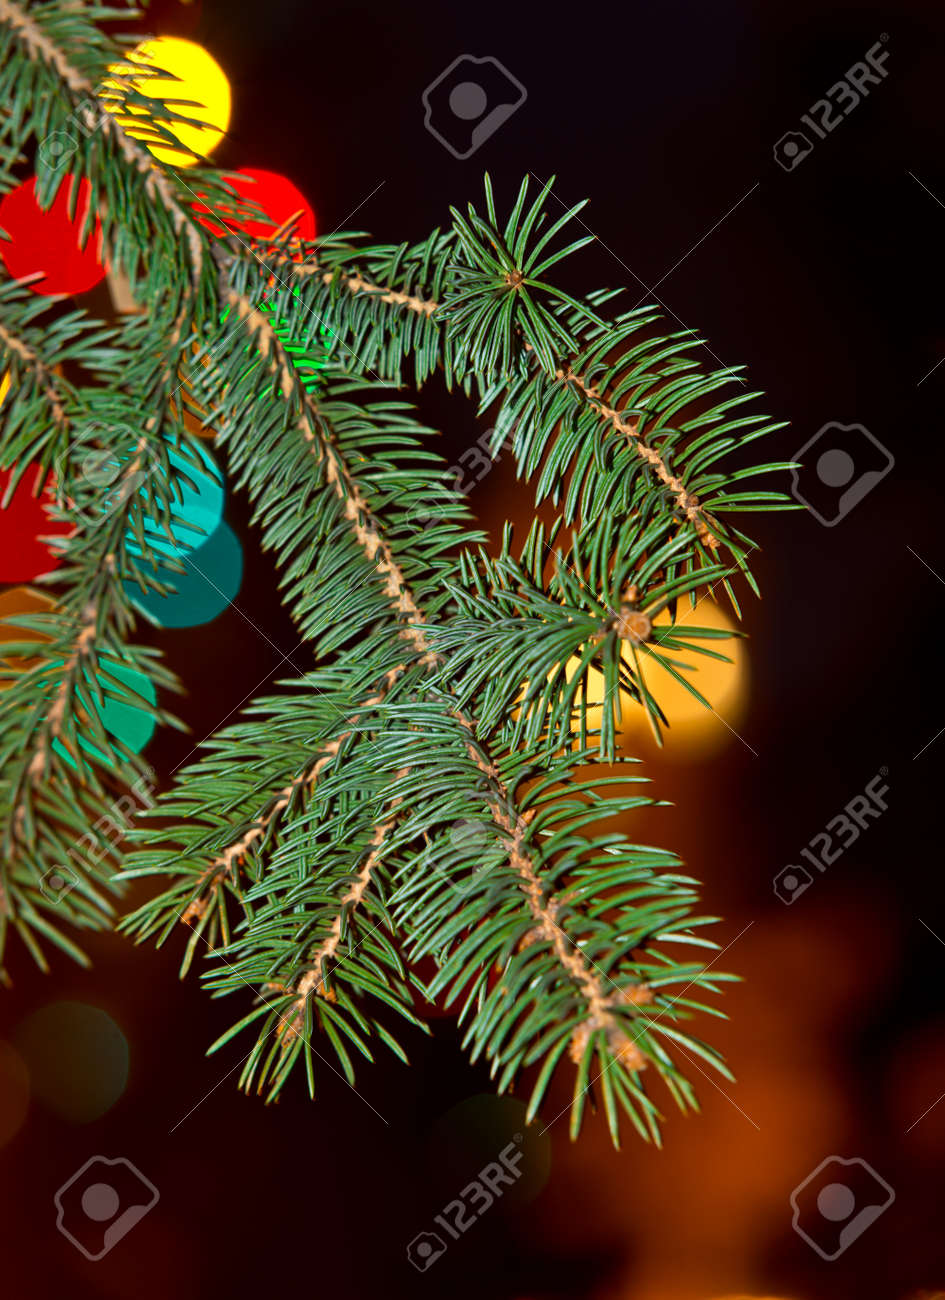 Twig Of Christmas Tree With Coloured Lights Stock Photo, Picture And ...